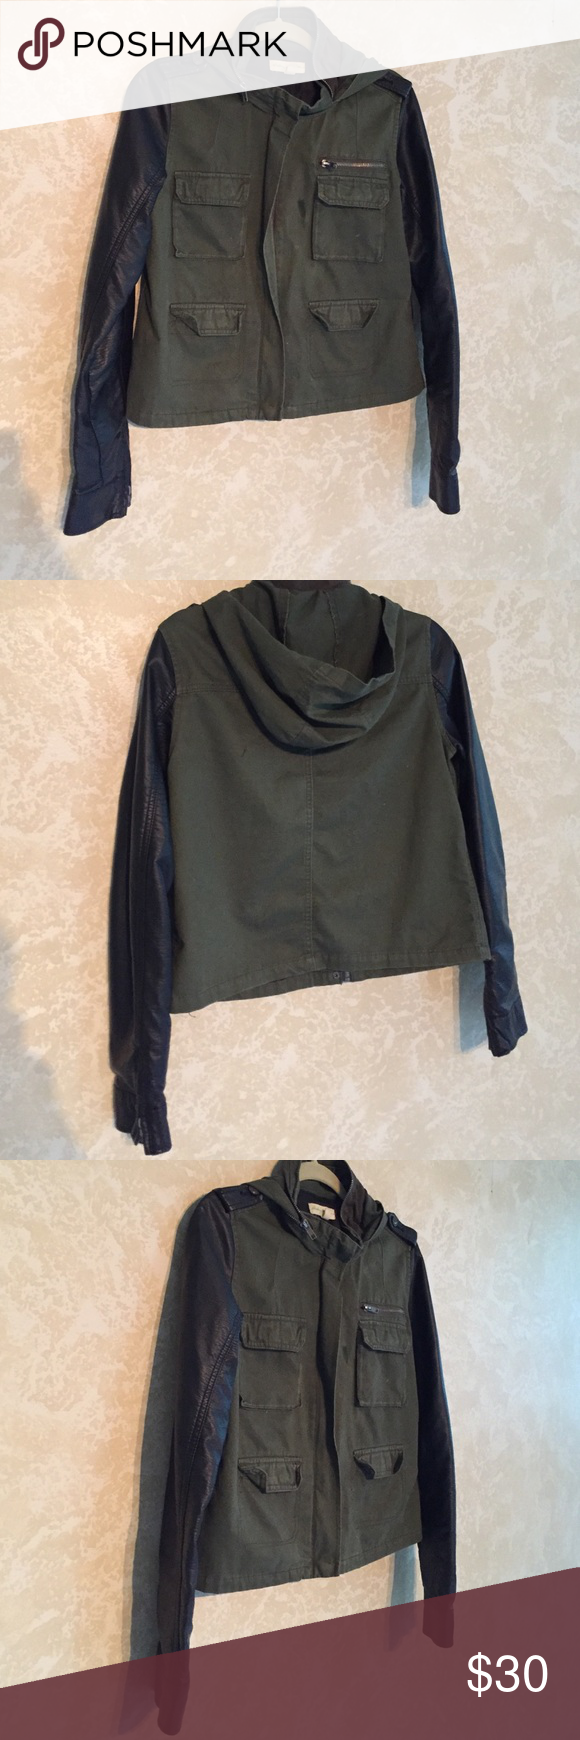 Urban outfitters military jacket Olive green jacket with faux leather sleeves. The hood can be out or tucked in Urban Outfitters Jackets & Coats Utility Jackets